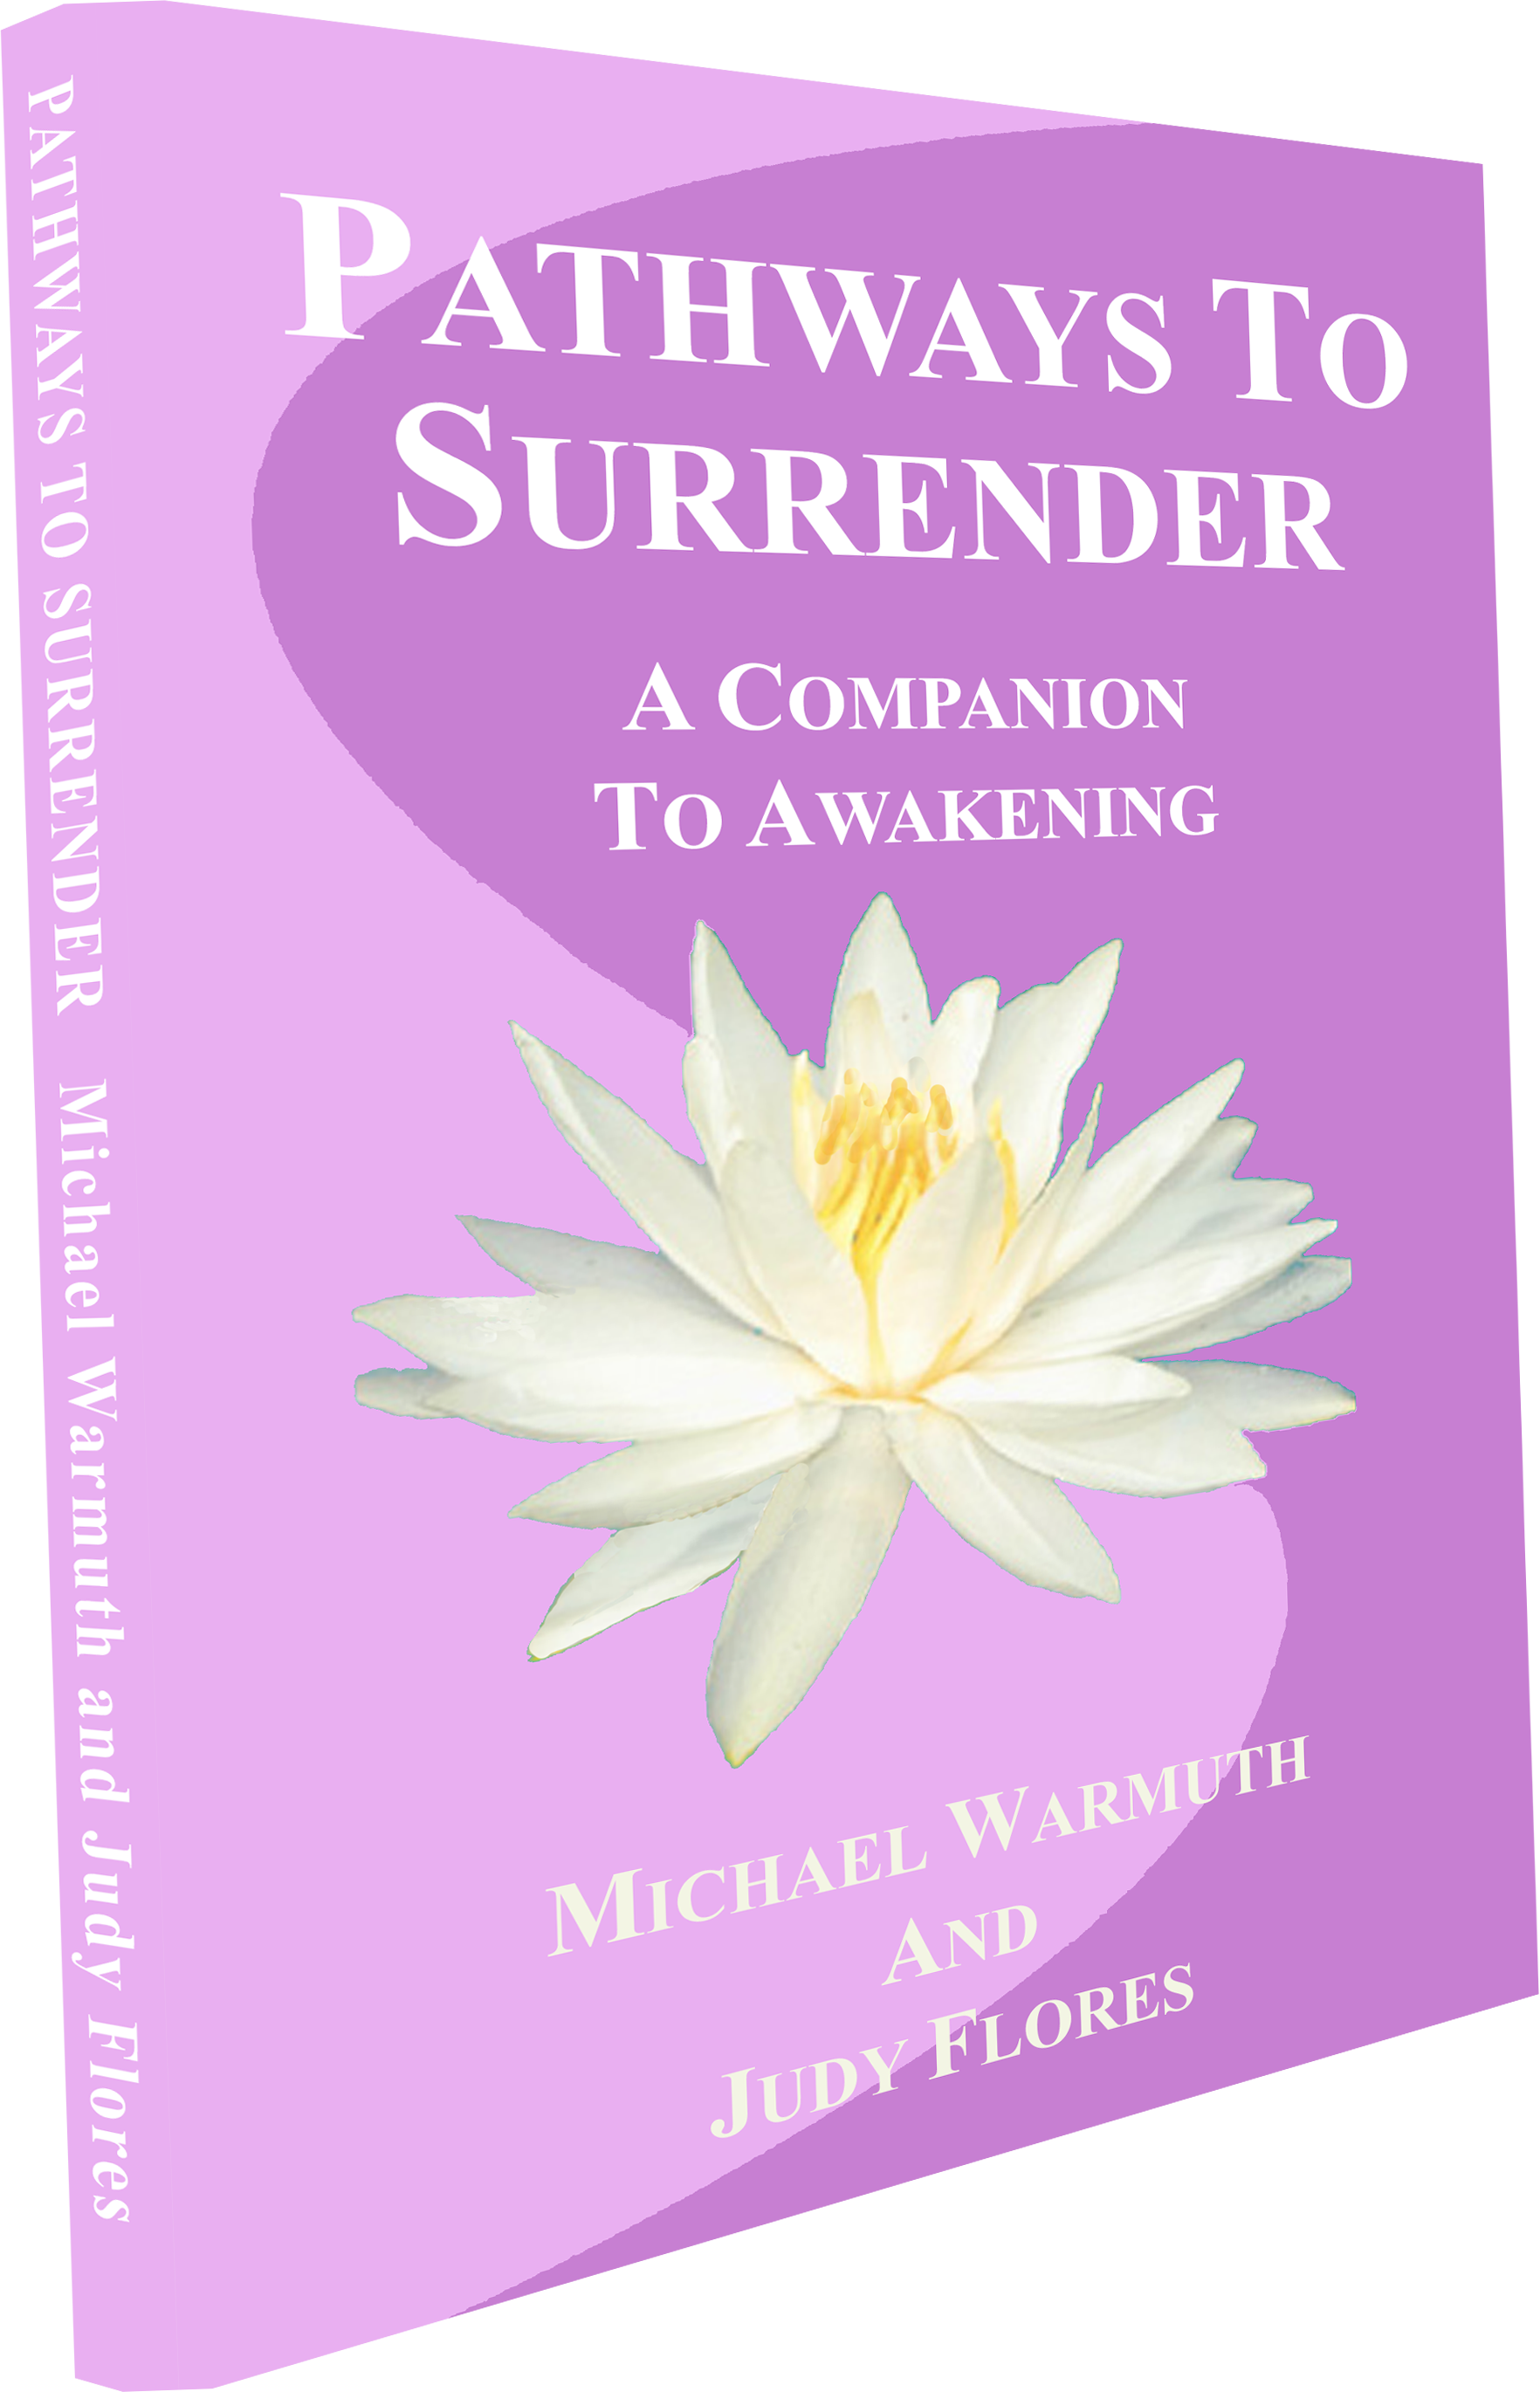 Pathways To Surrender - the book